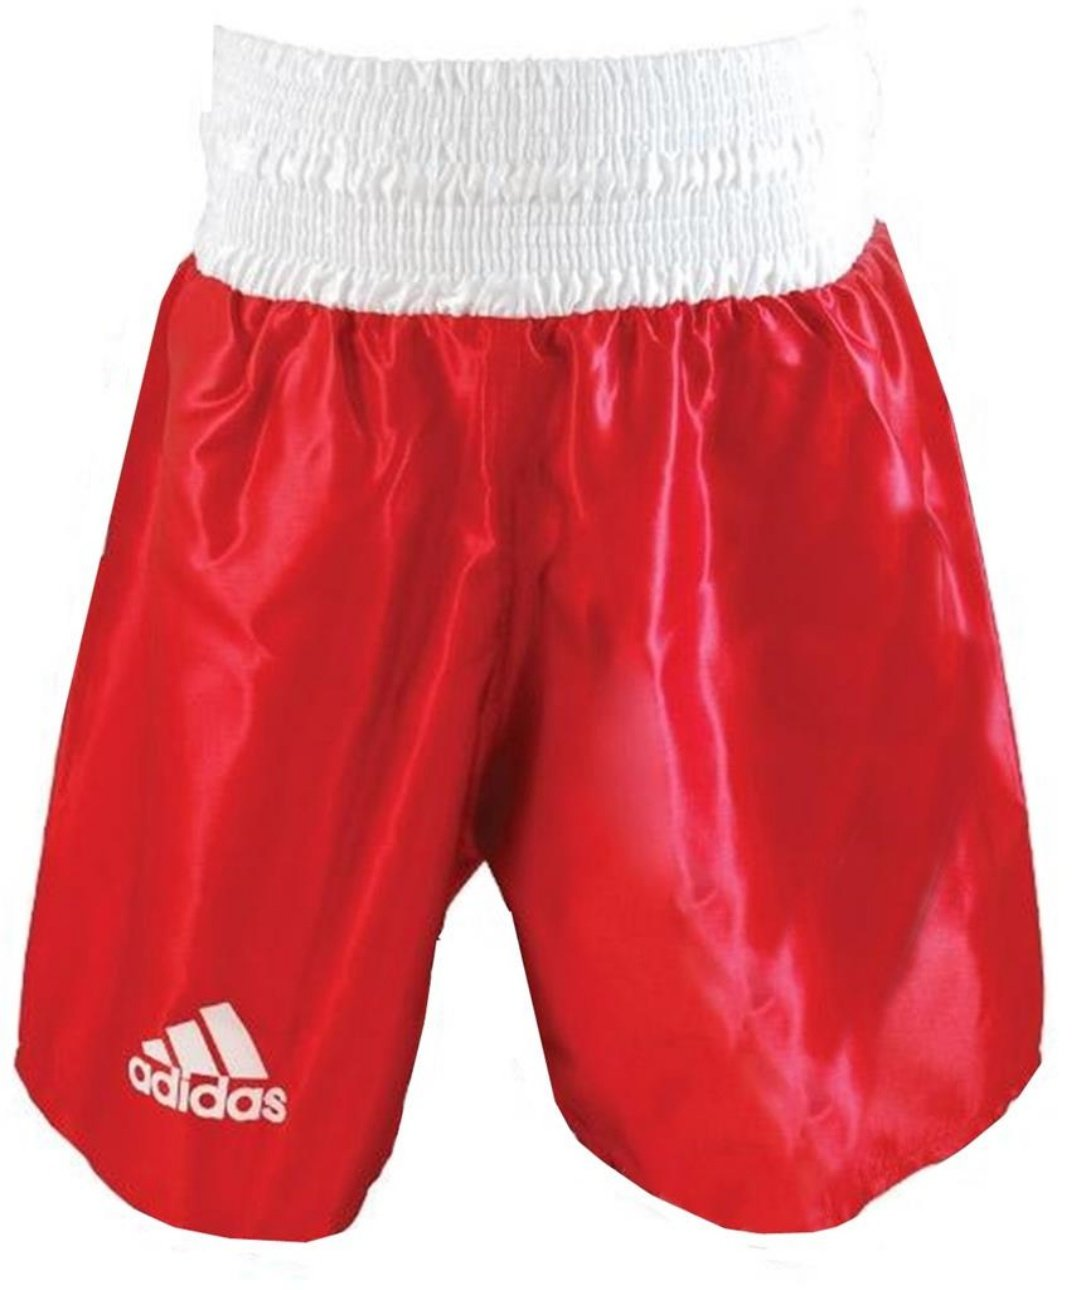 Adidas Damen Boxing Shorts o94516 in College rotweiß Größen